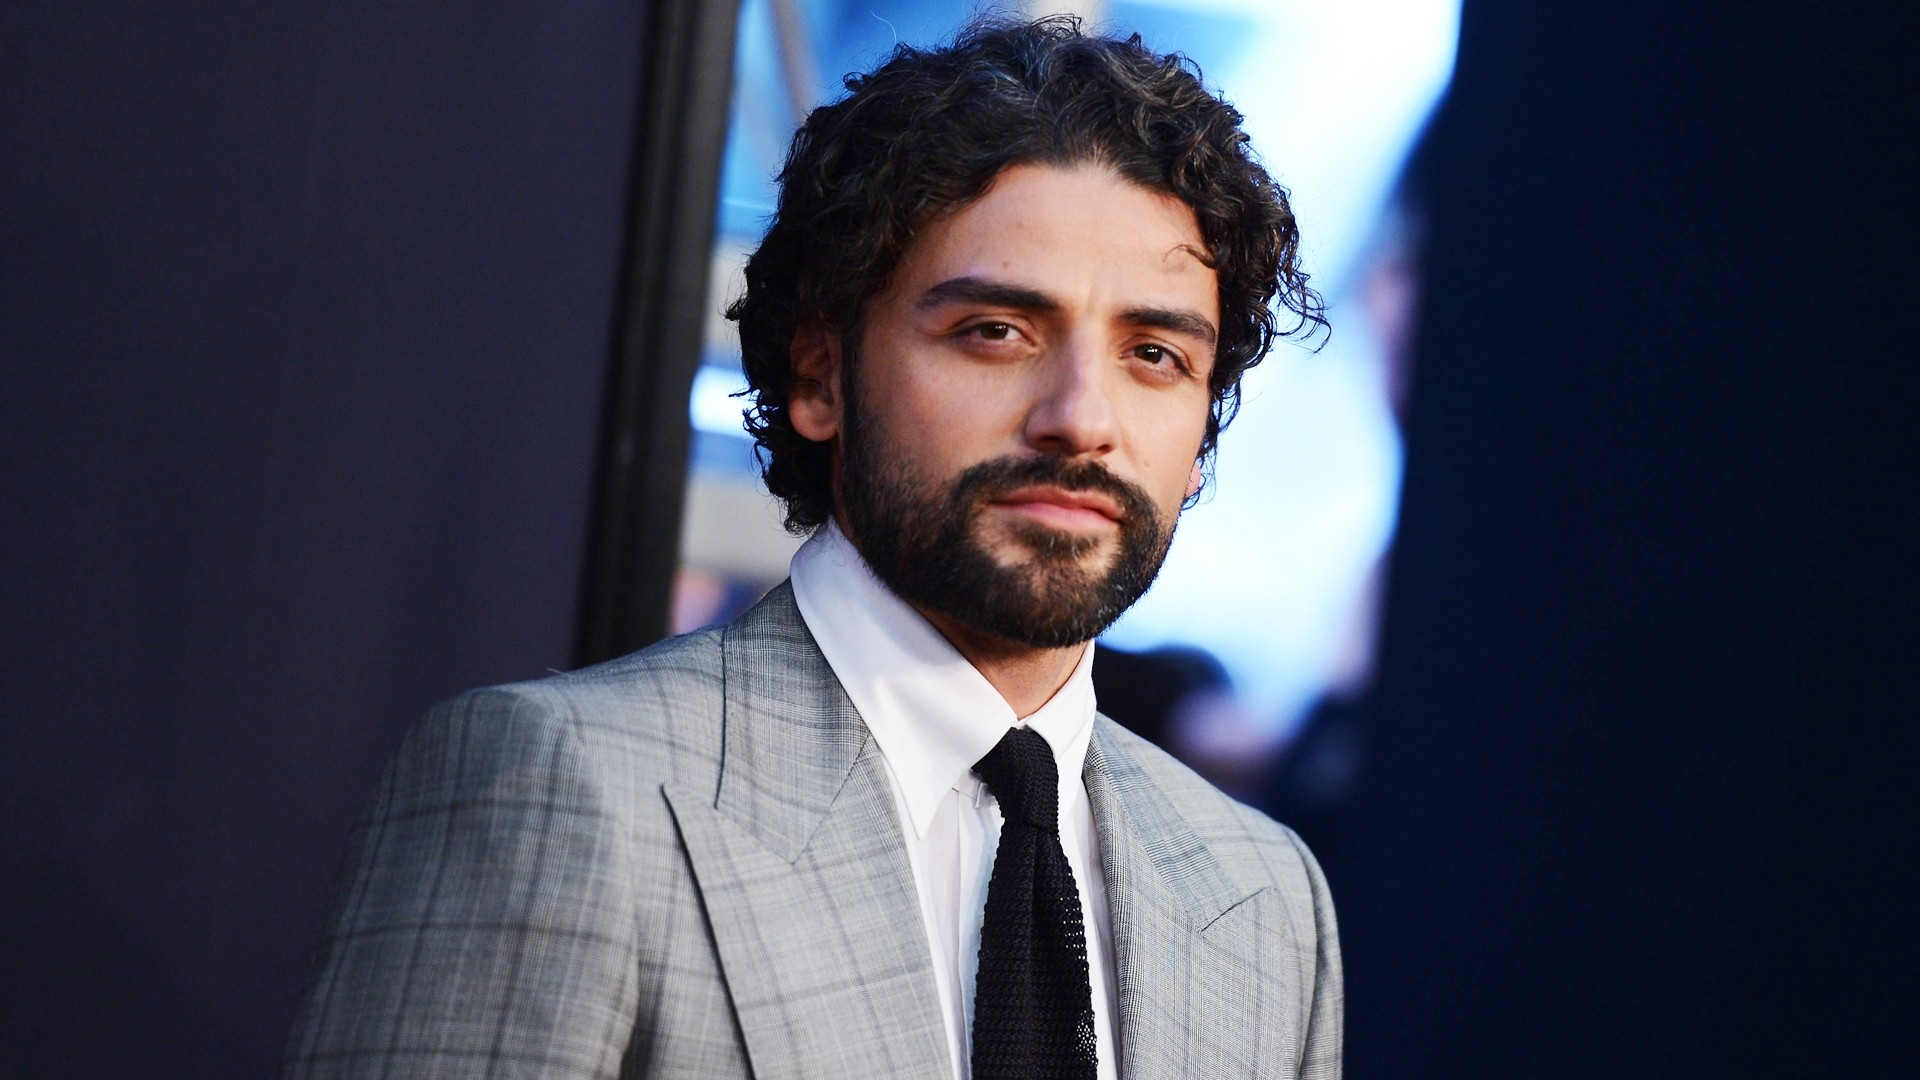 Oscar Isaac Net Worth